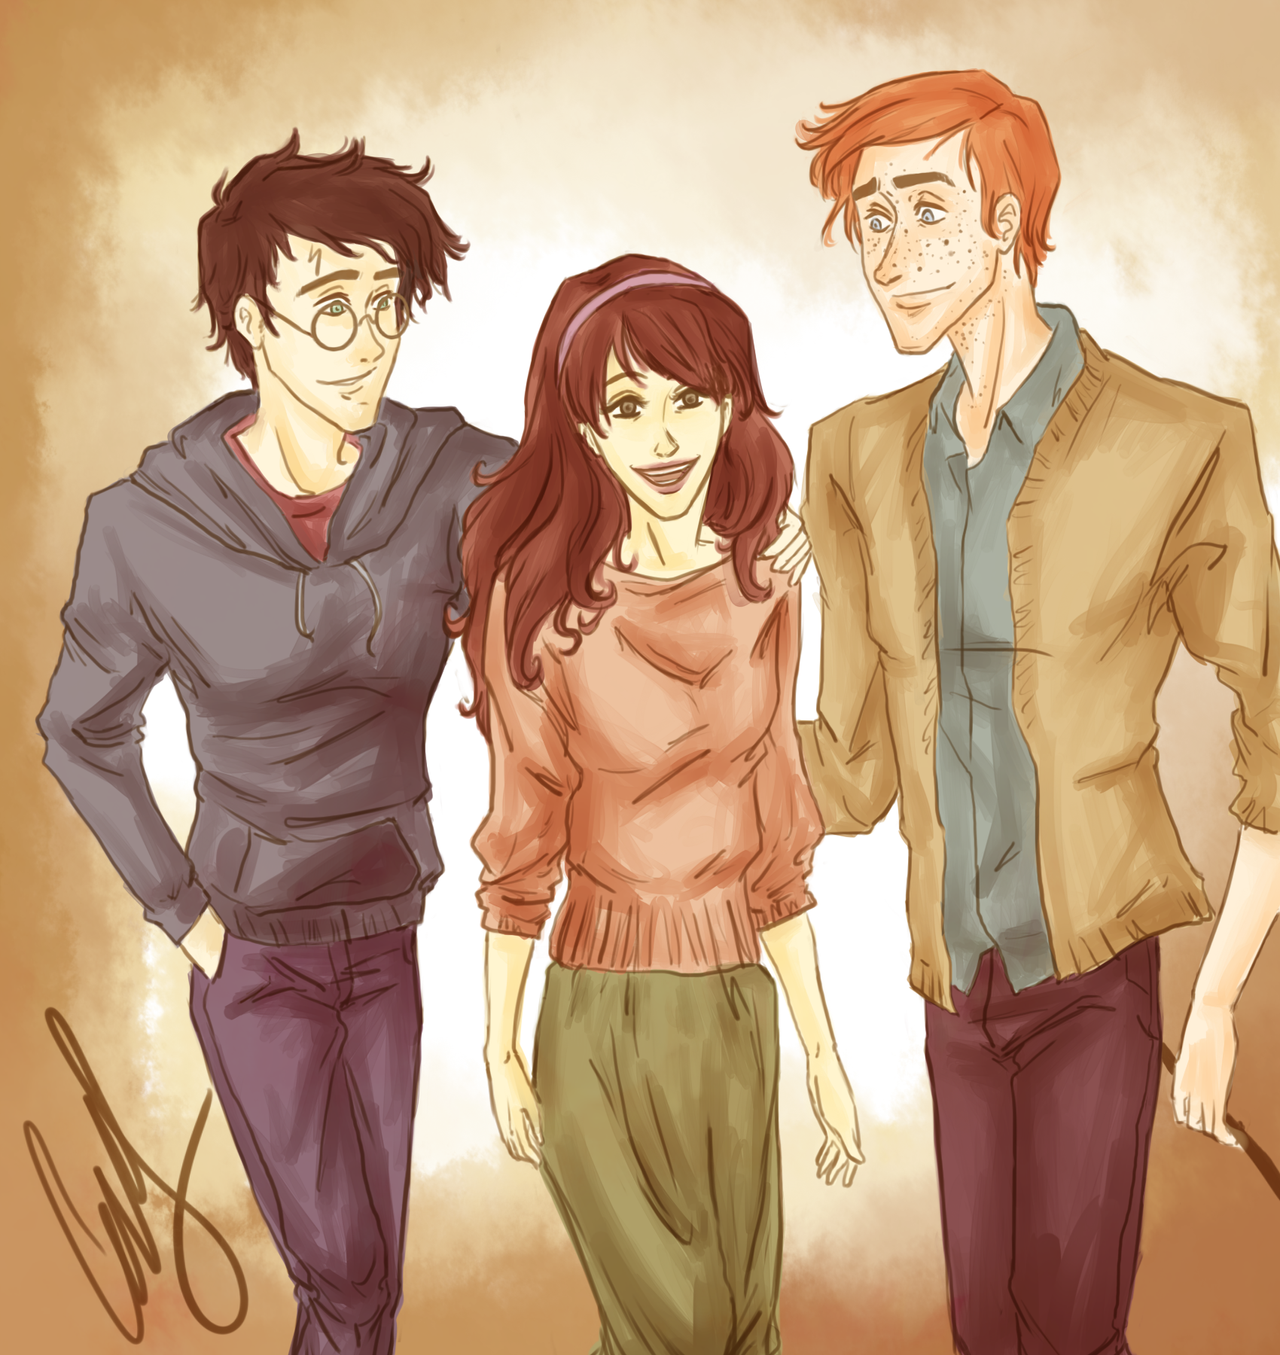 You guys are my best friends by AniPokie on DeviantArt